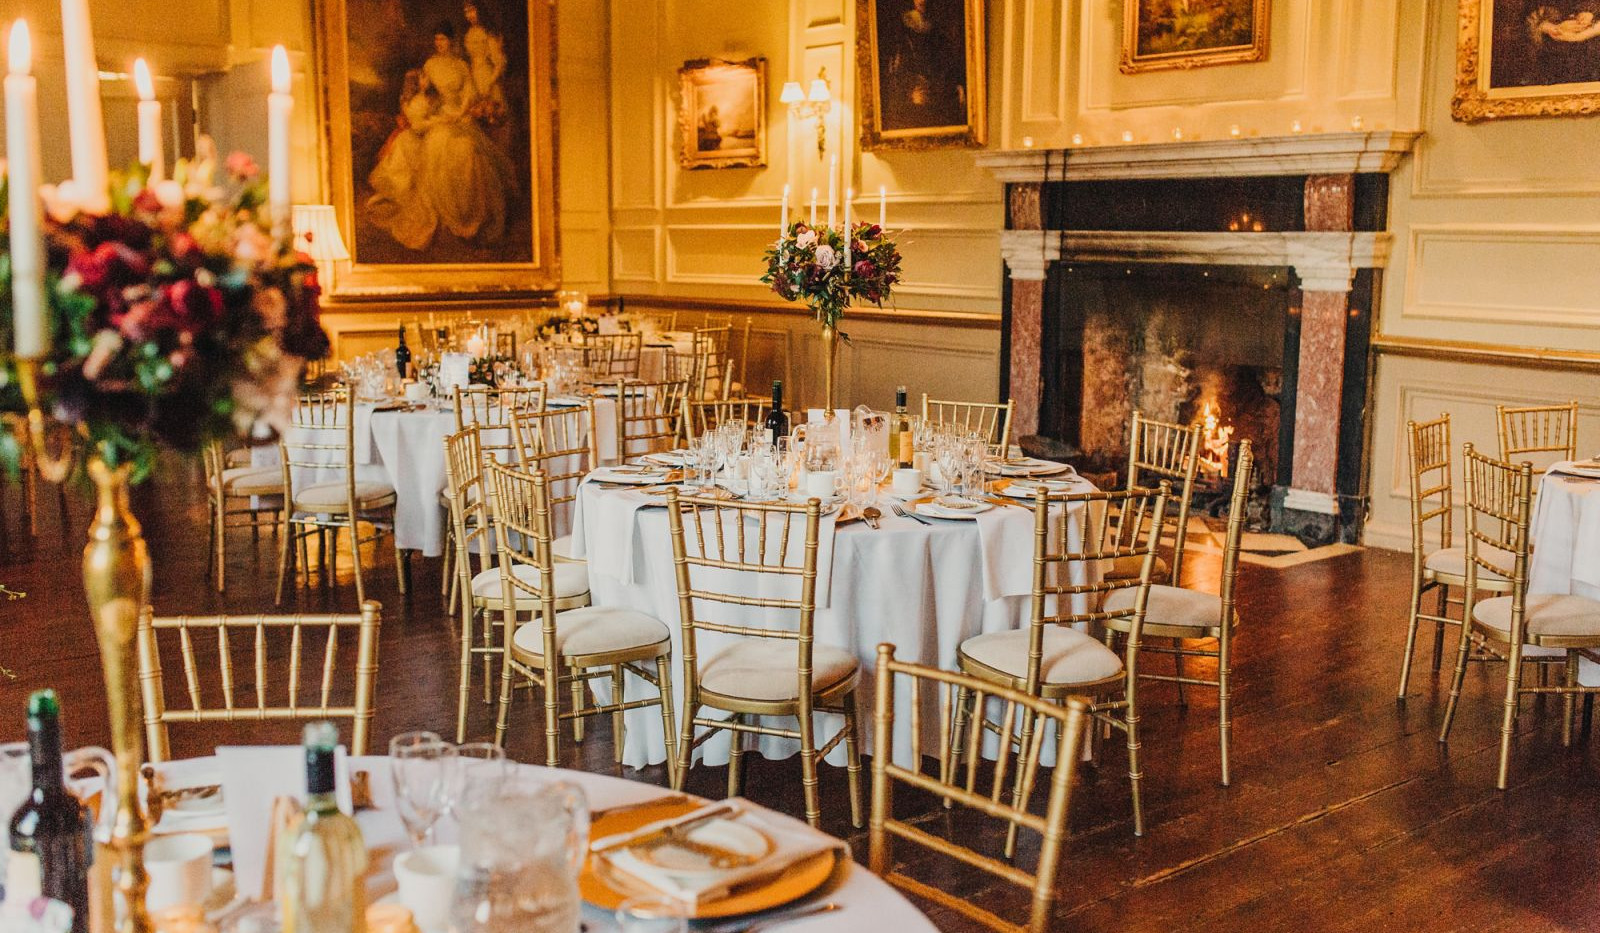 The Salon makes a beautiful dining space for Winter weddings